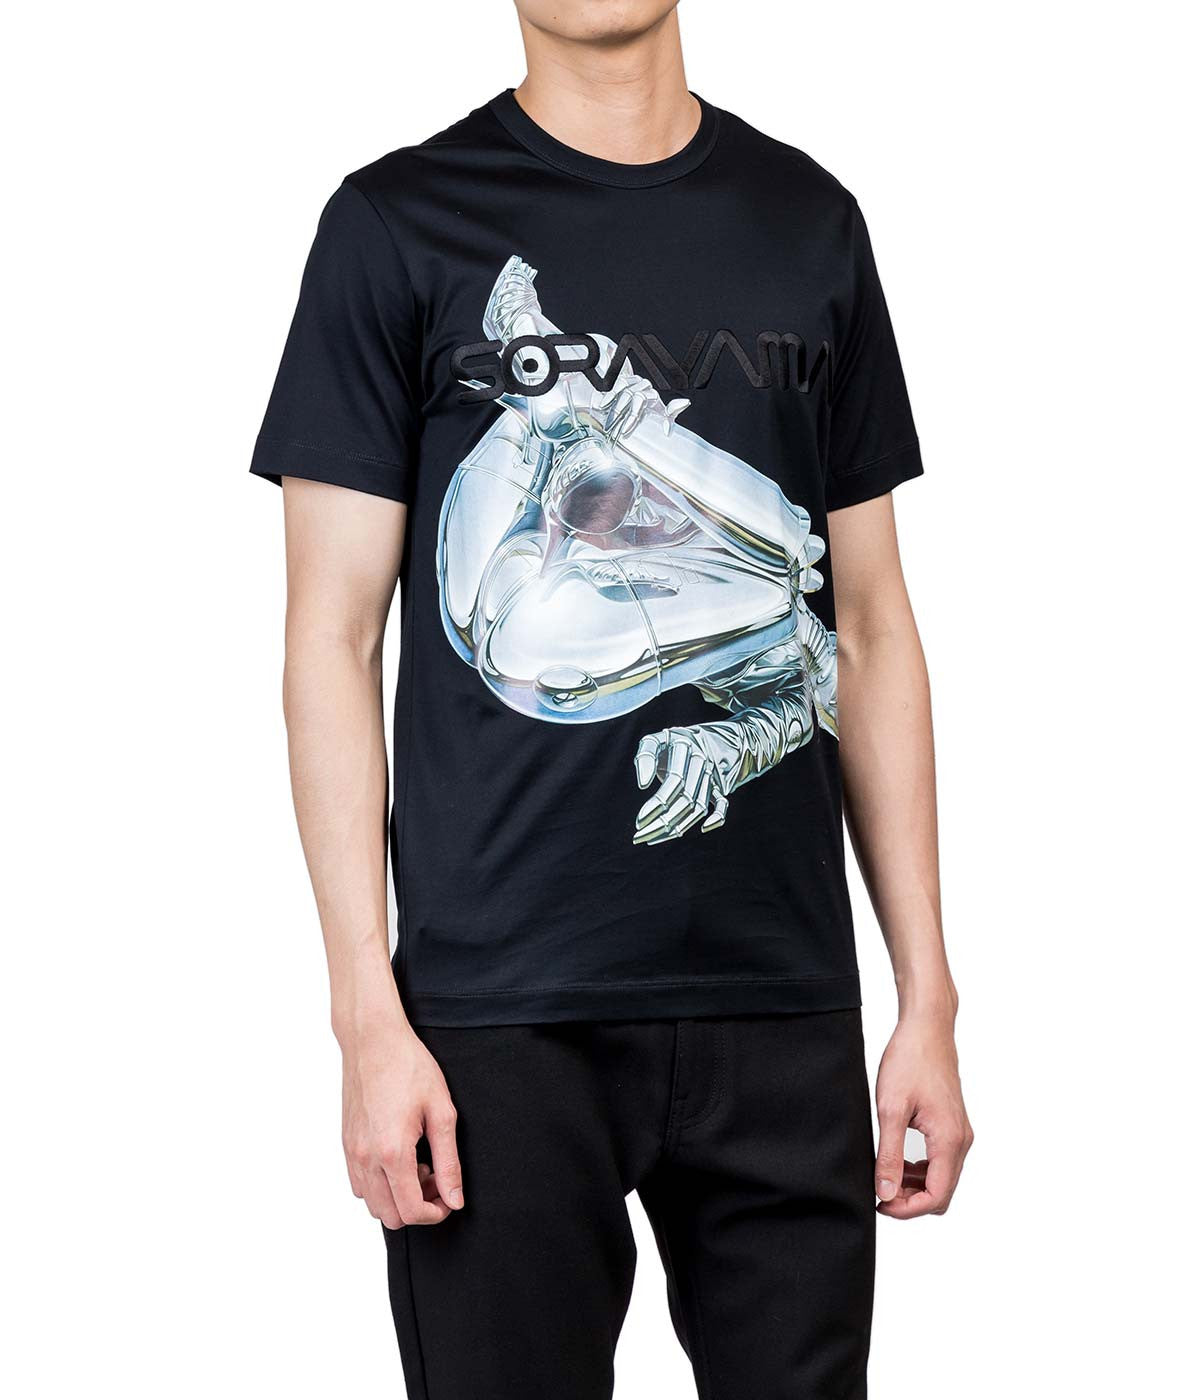 Sorayama Graphic T-Shirt